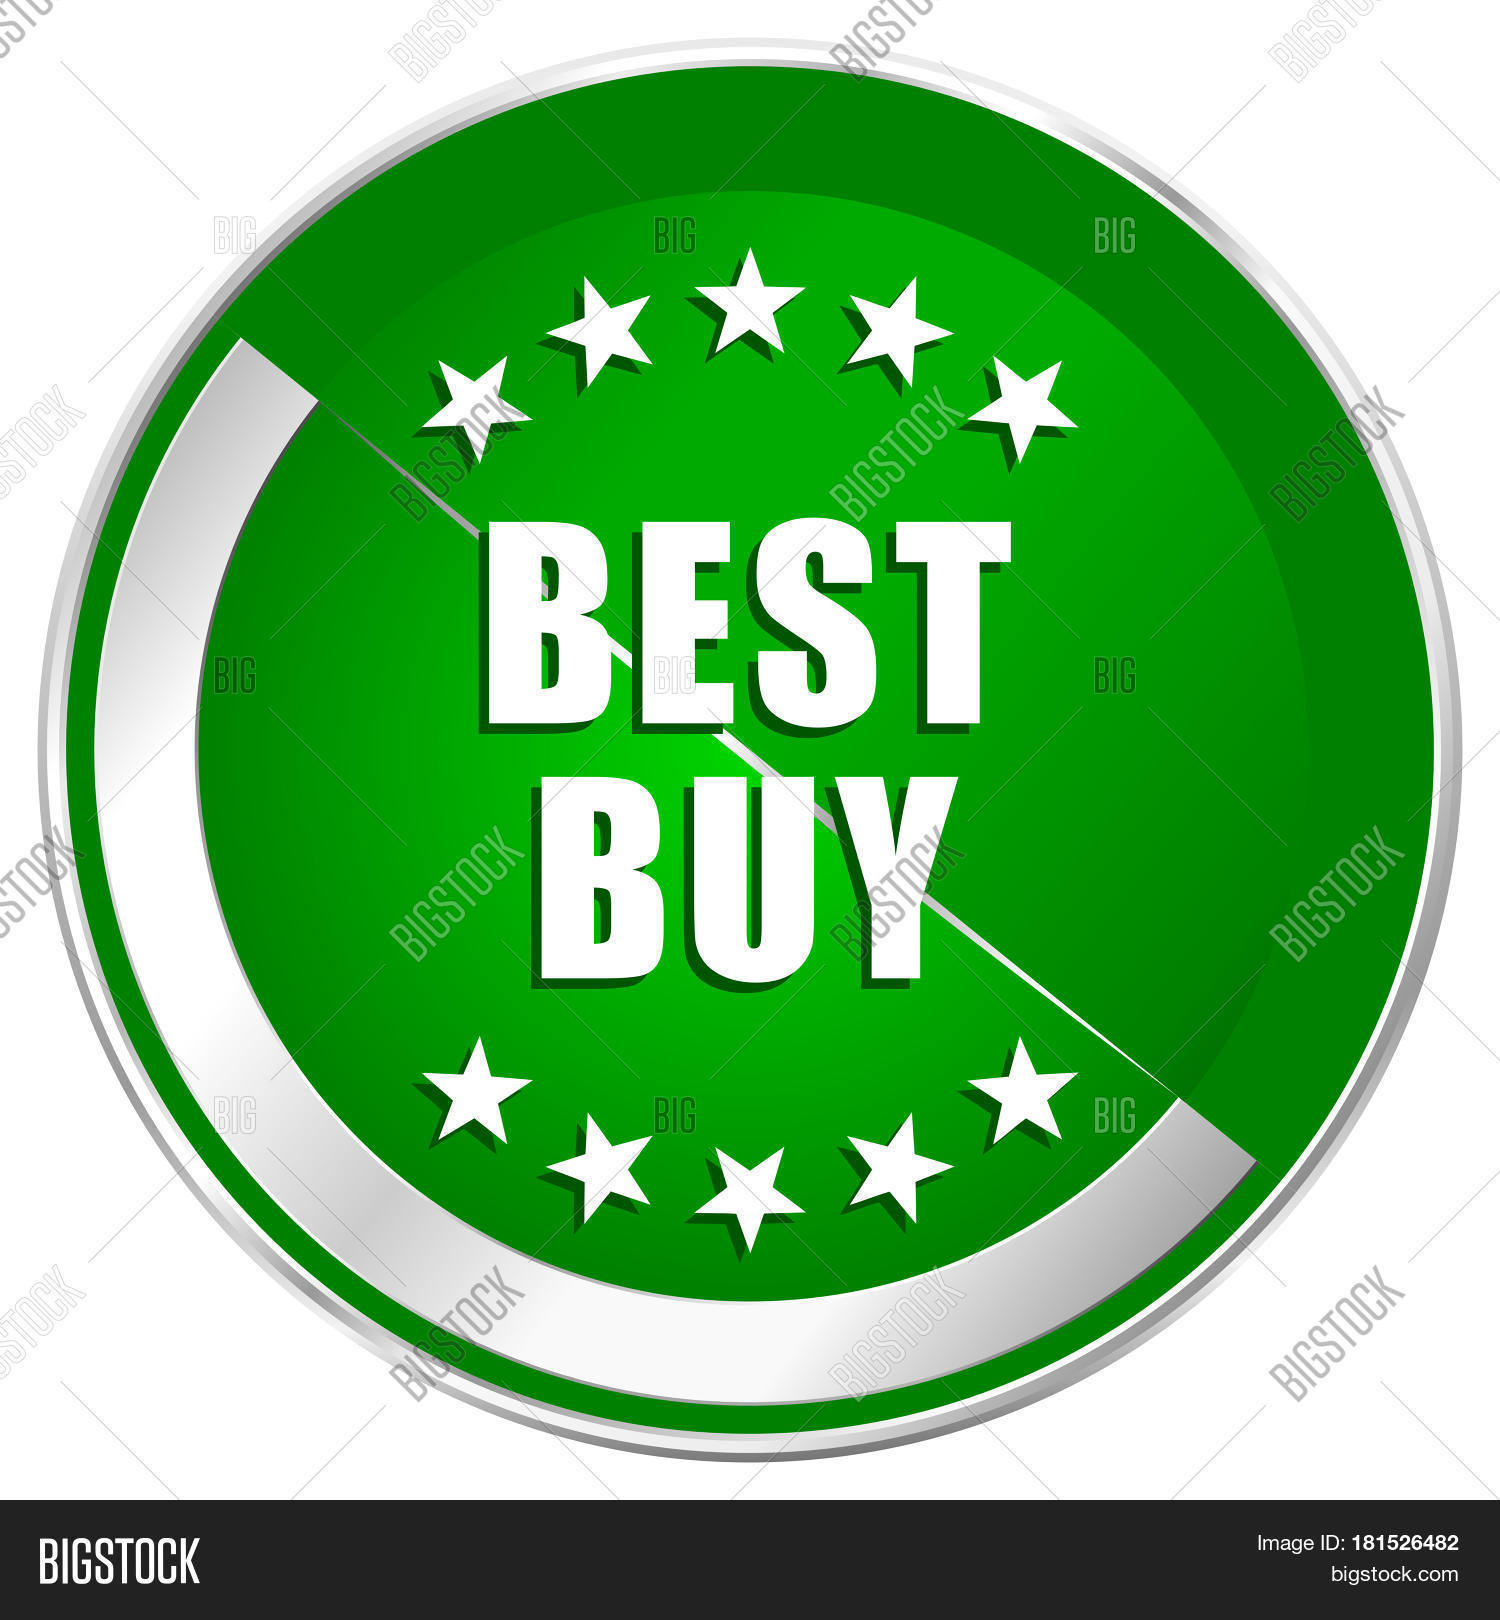 Best Buy Silver Metallic Border Image Photo Bigstock